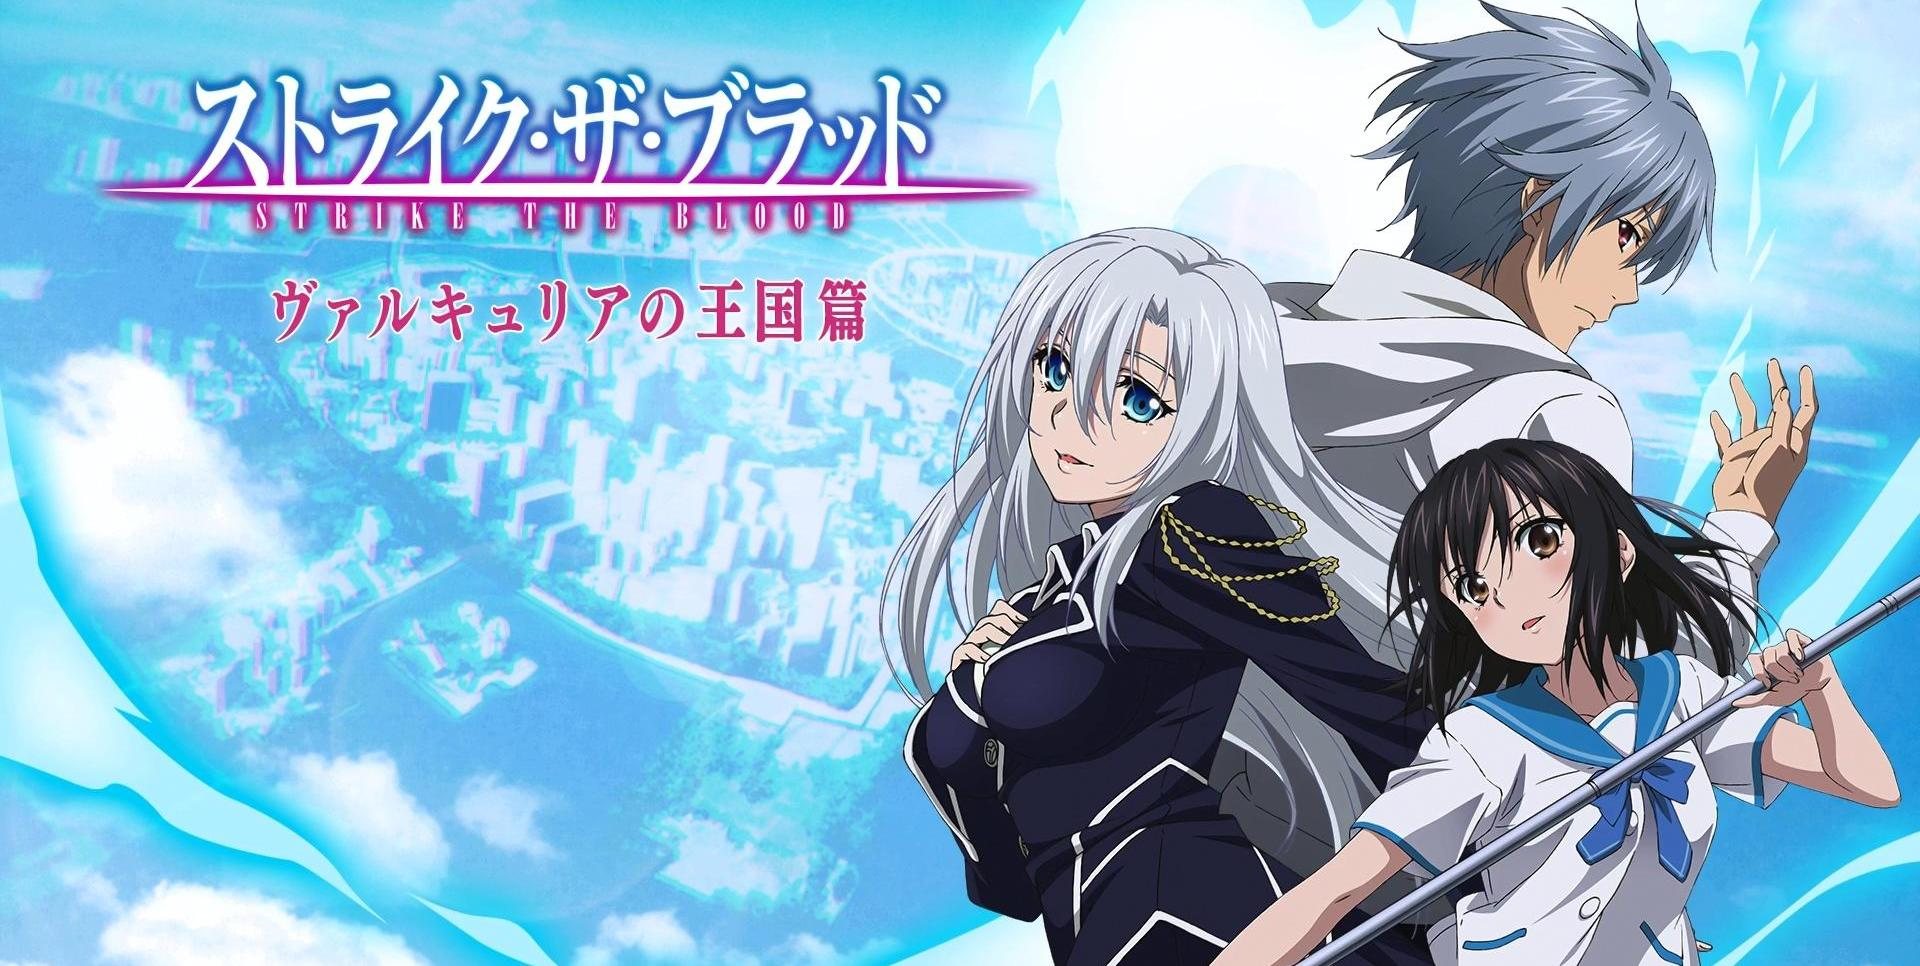 Xem phim Strike the Blood III - Strike the Blood Third Season 3 Vietsub